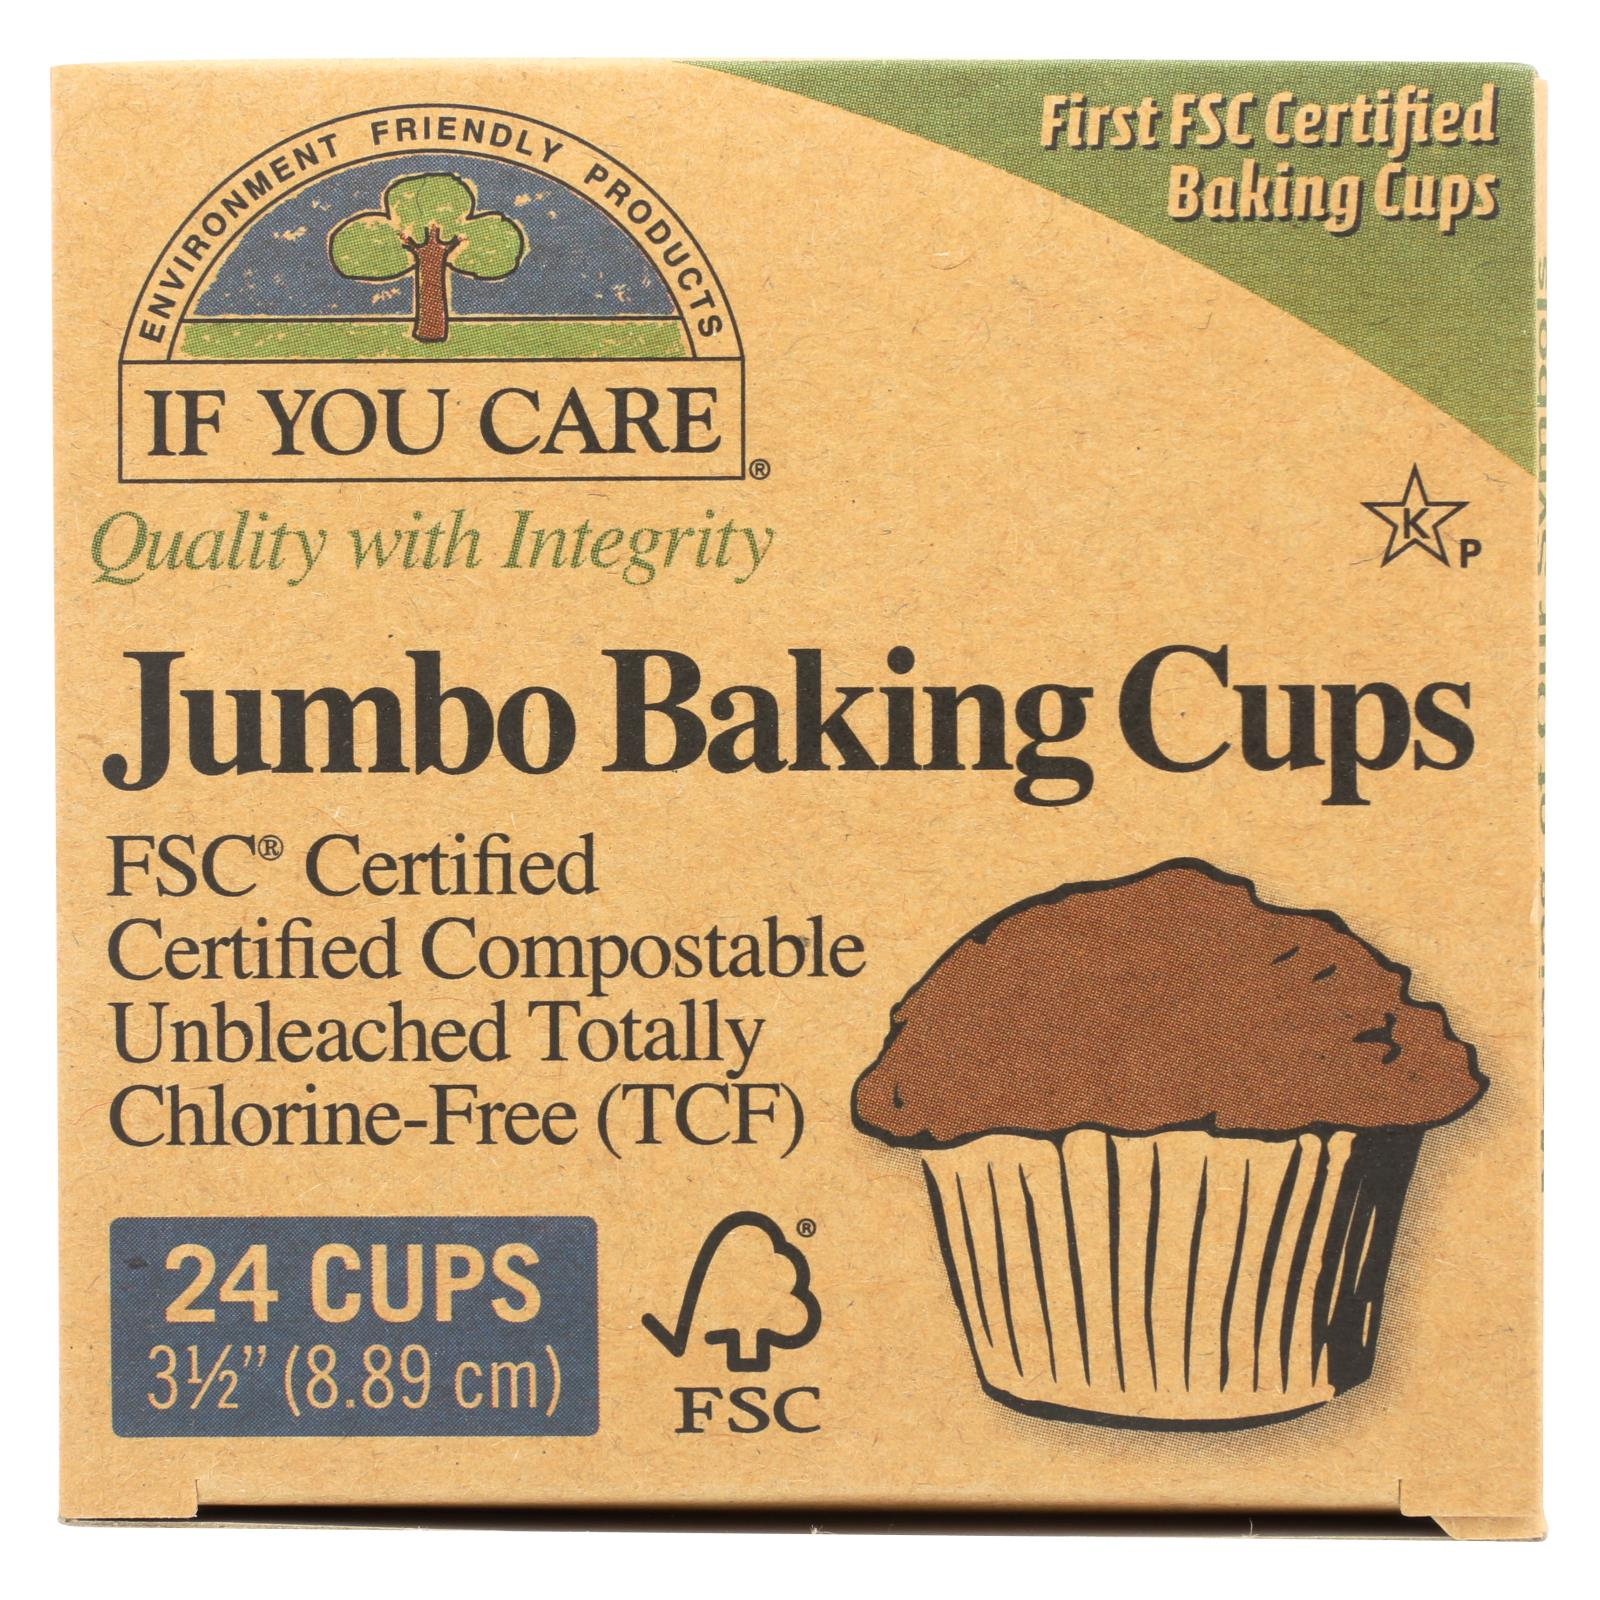 Buy If You Care Baking Cups - Jumbo - Unbleached Totally Chlorine Free - 24 Count - Baking and Cake Decorating from Veroeco.com